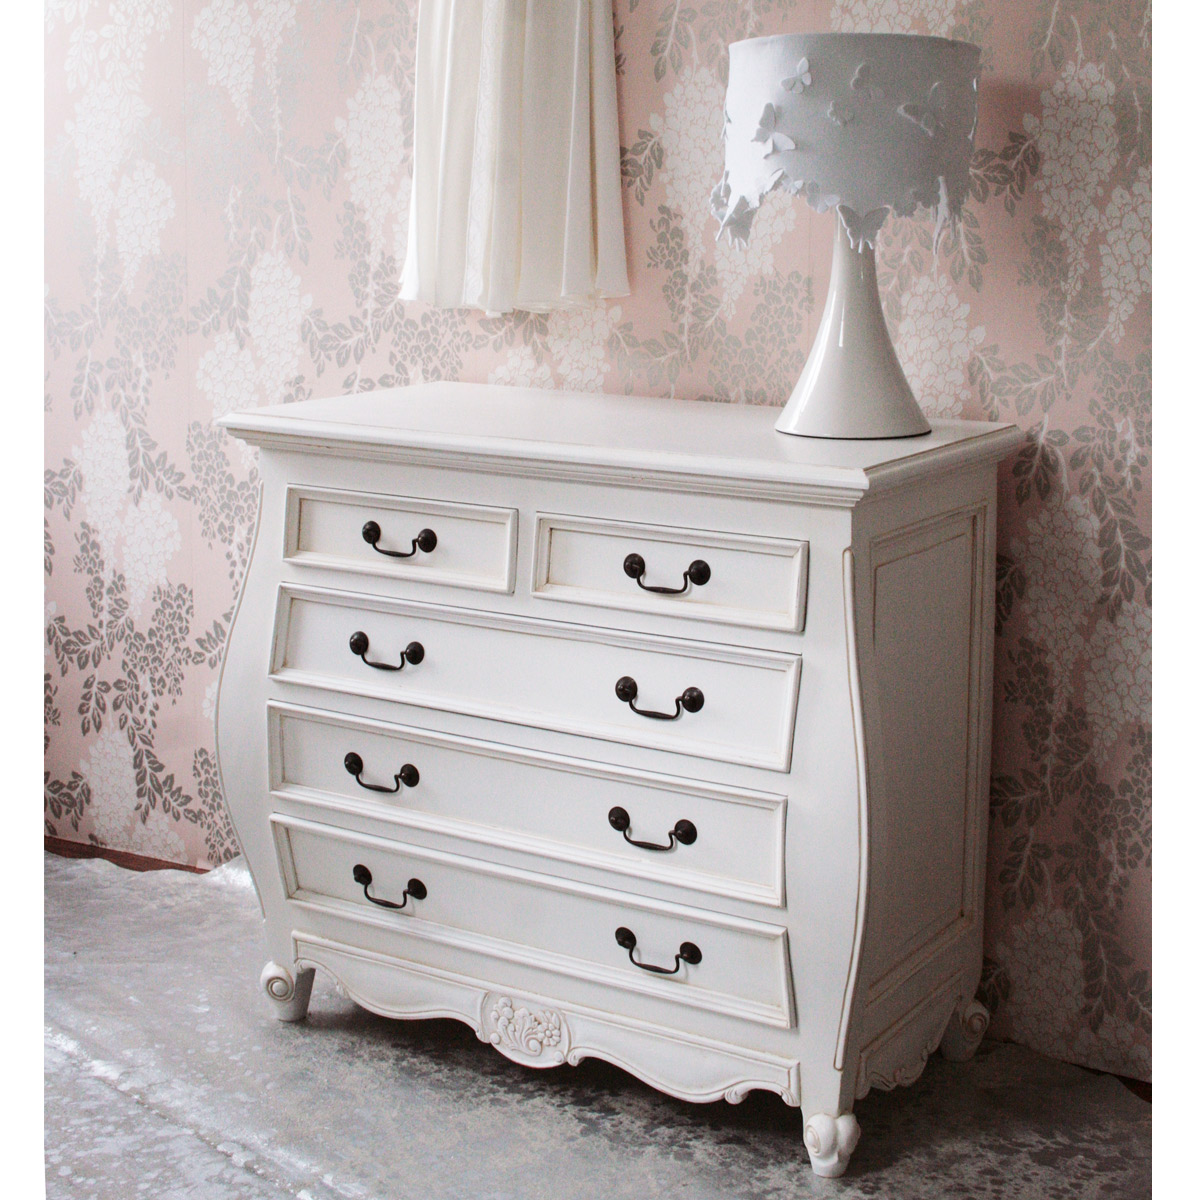 Provencal bombe white chest drawers french bedroom company for White bedroom chest of drawers